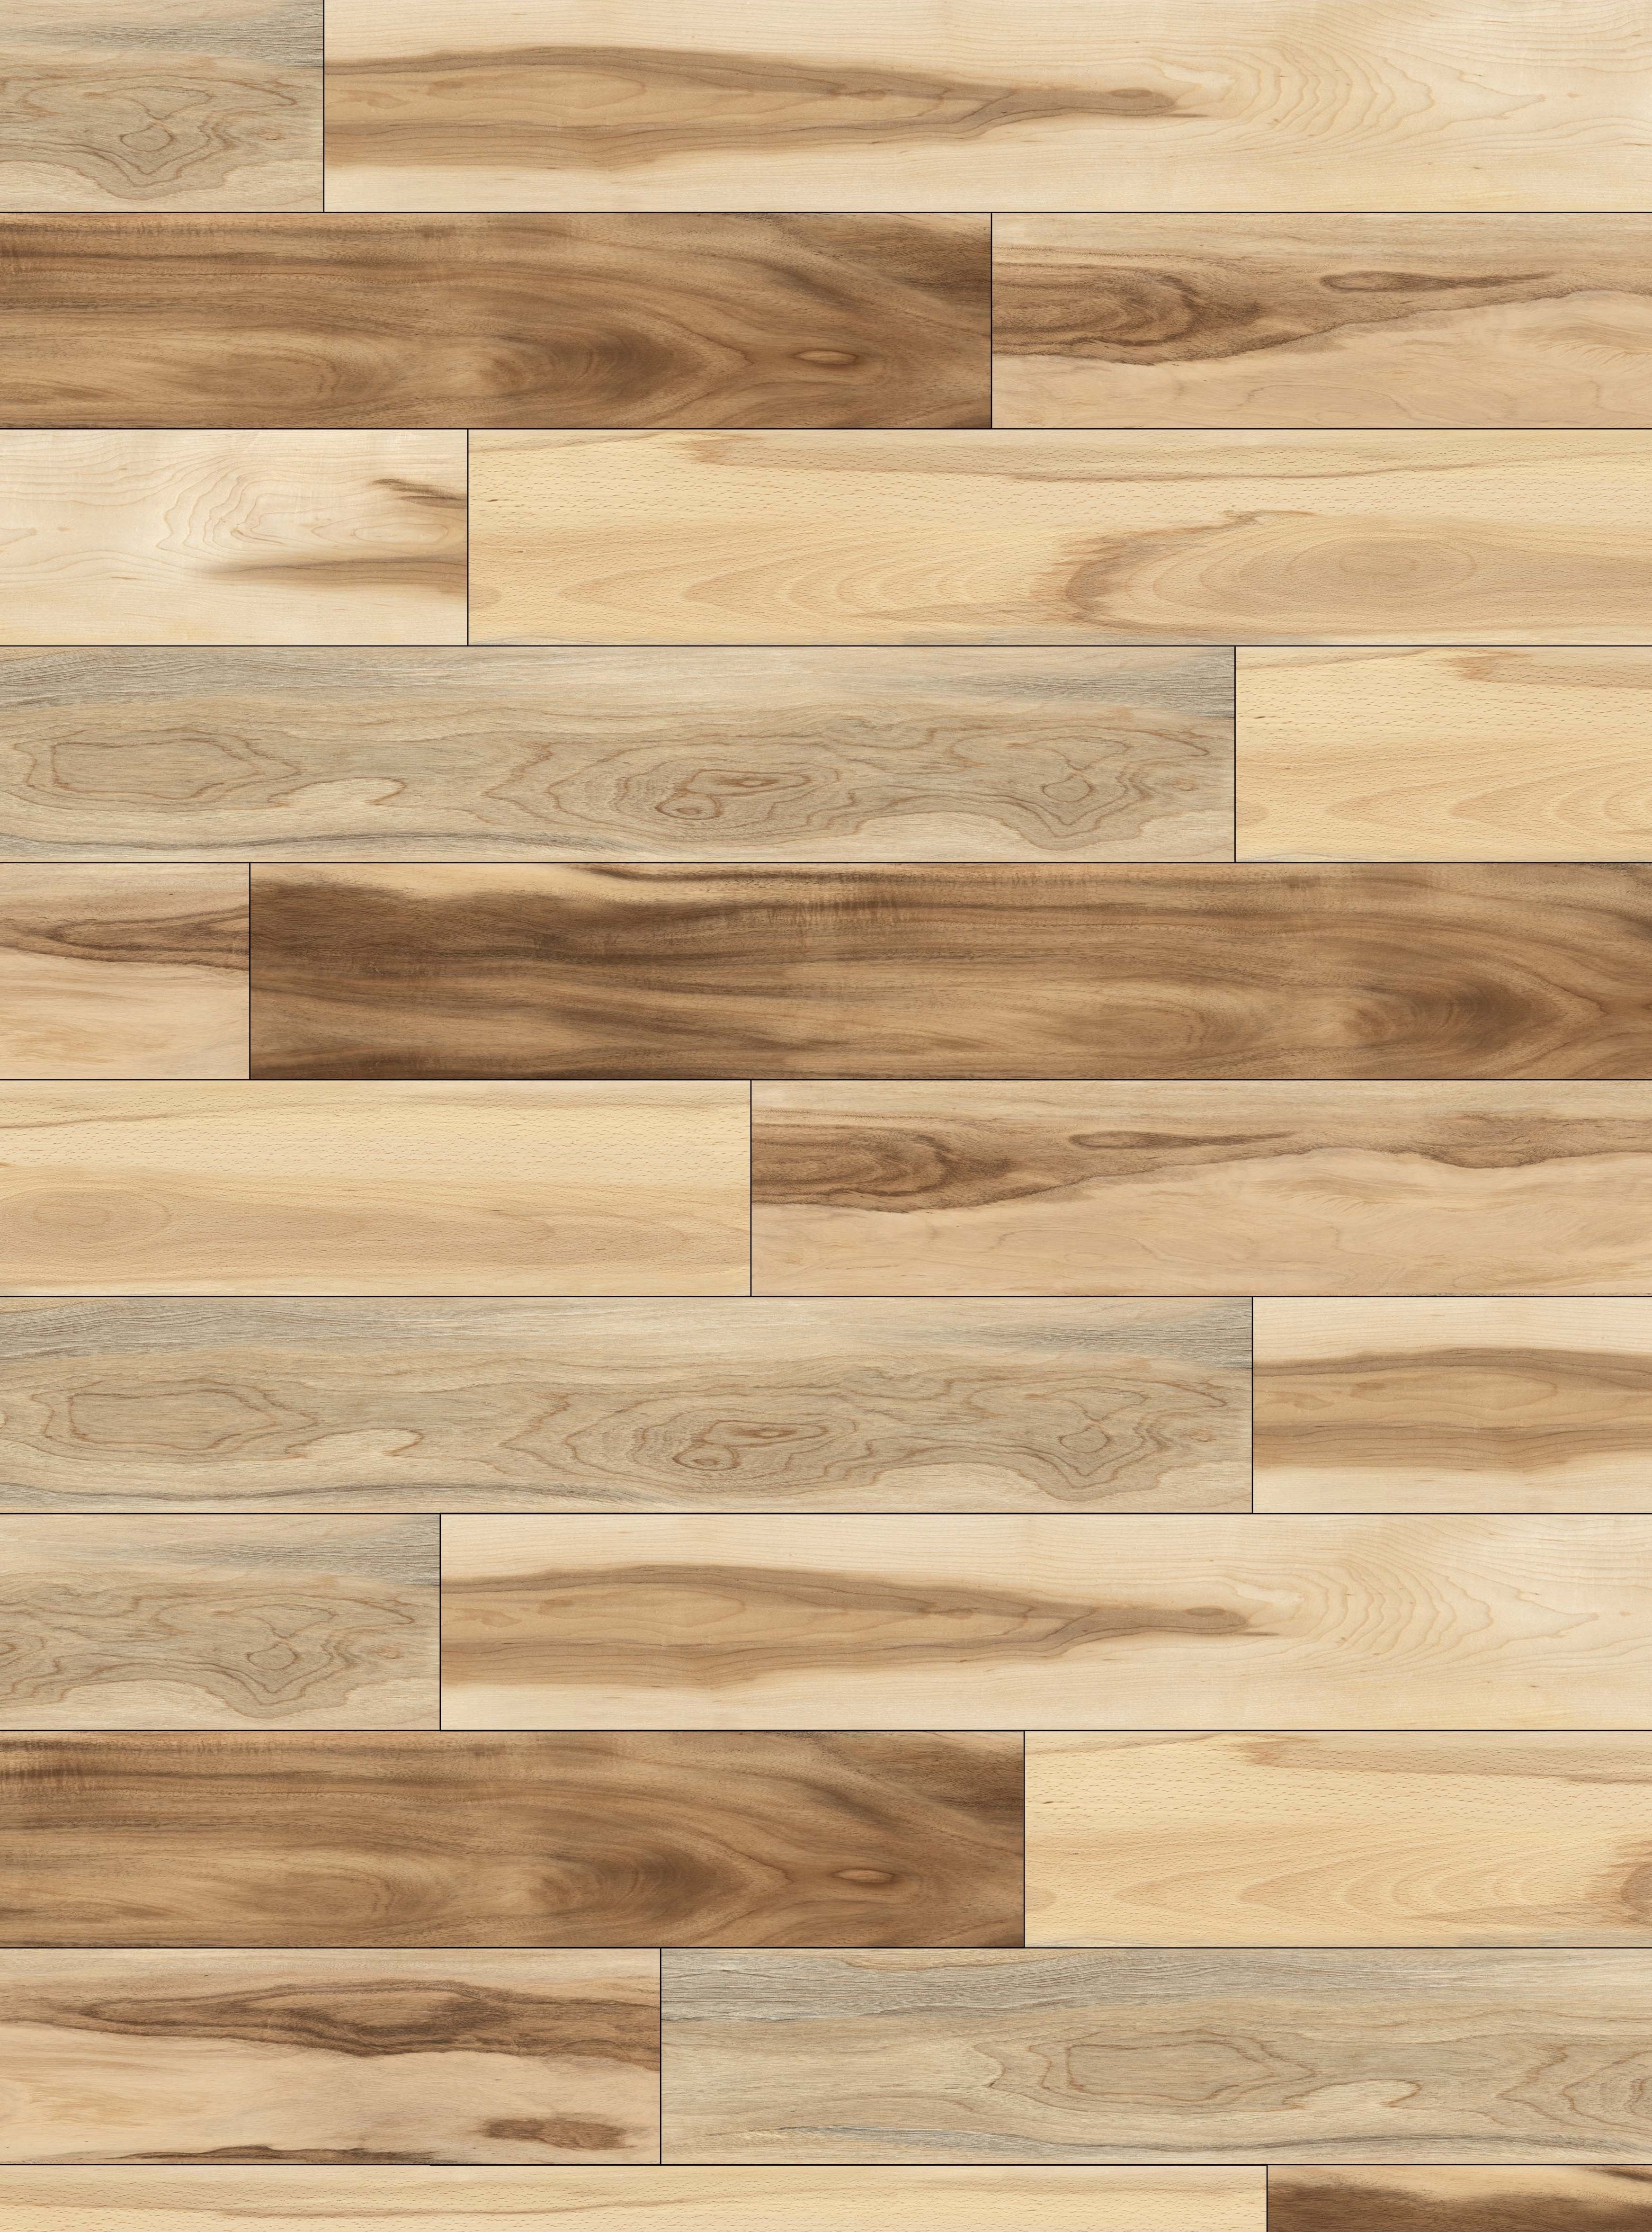 Top Colors Check Out Our Most Popular Colors And Find The One That S Right For You Wood Texture Wood Tile Cladding